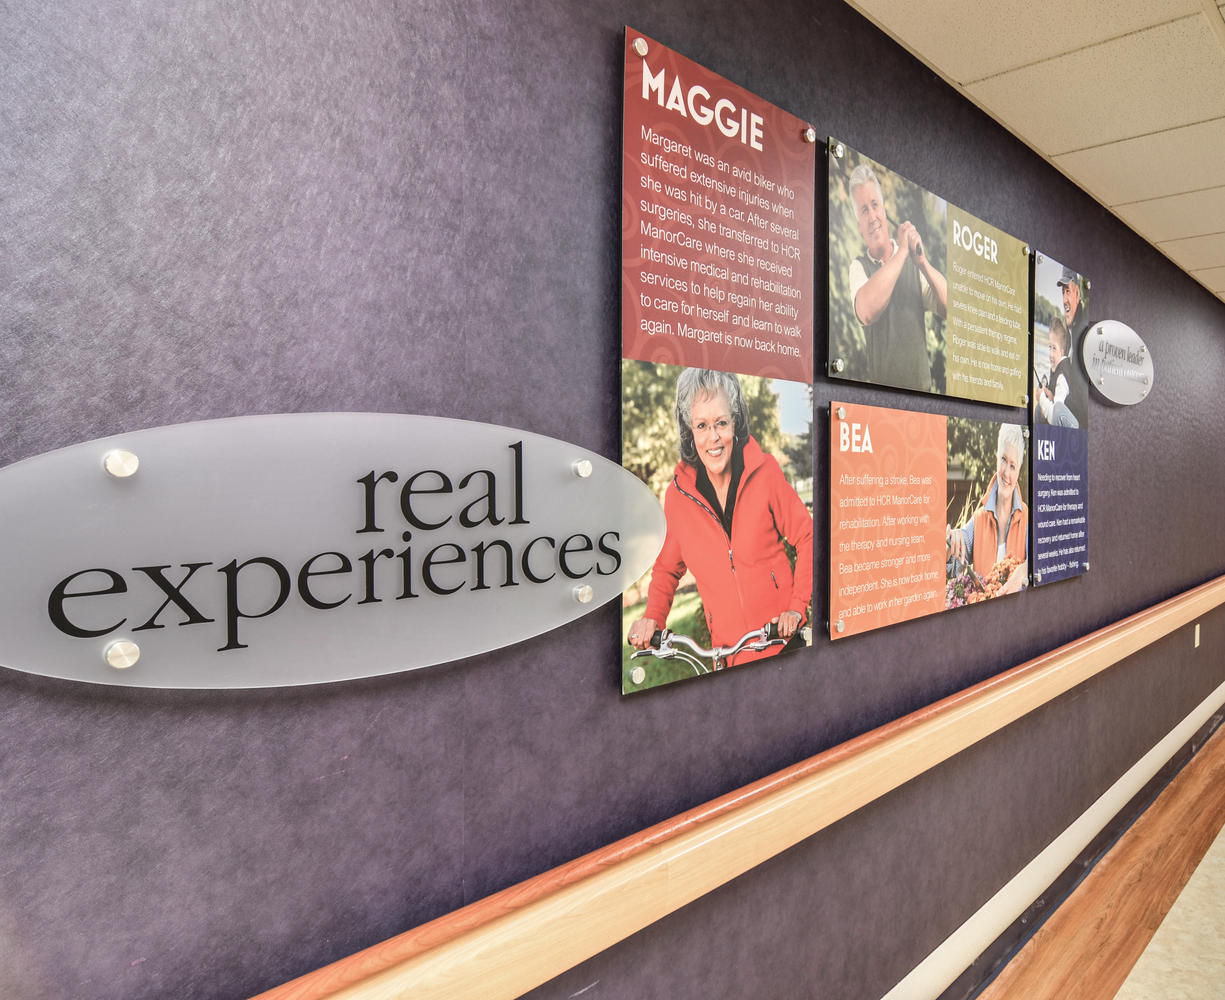 Manorcare Health Services Large 003 Real Experiences 1225X1000 72Dpi